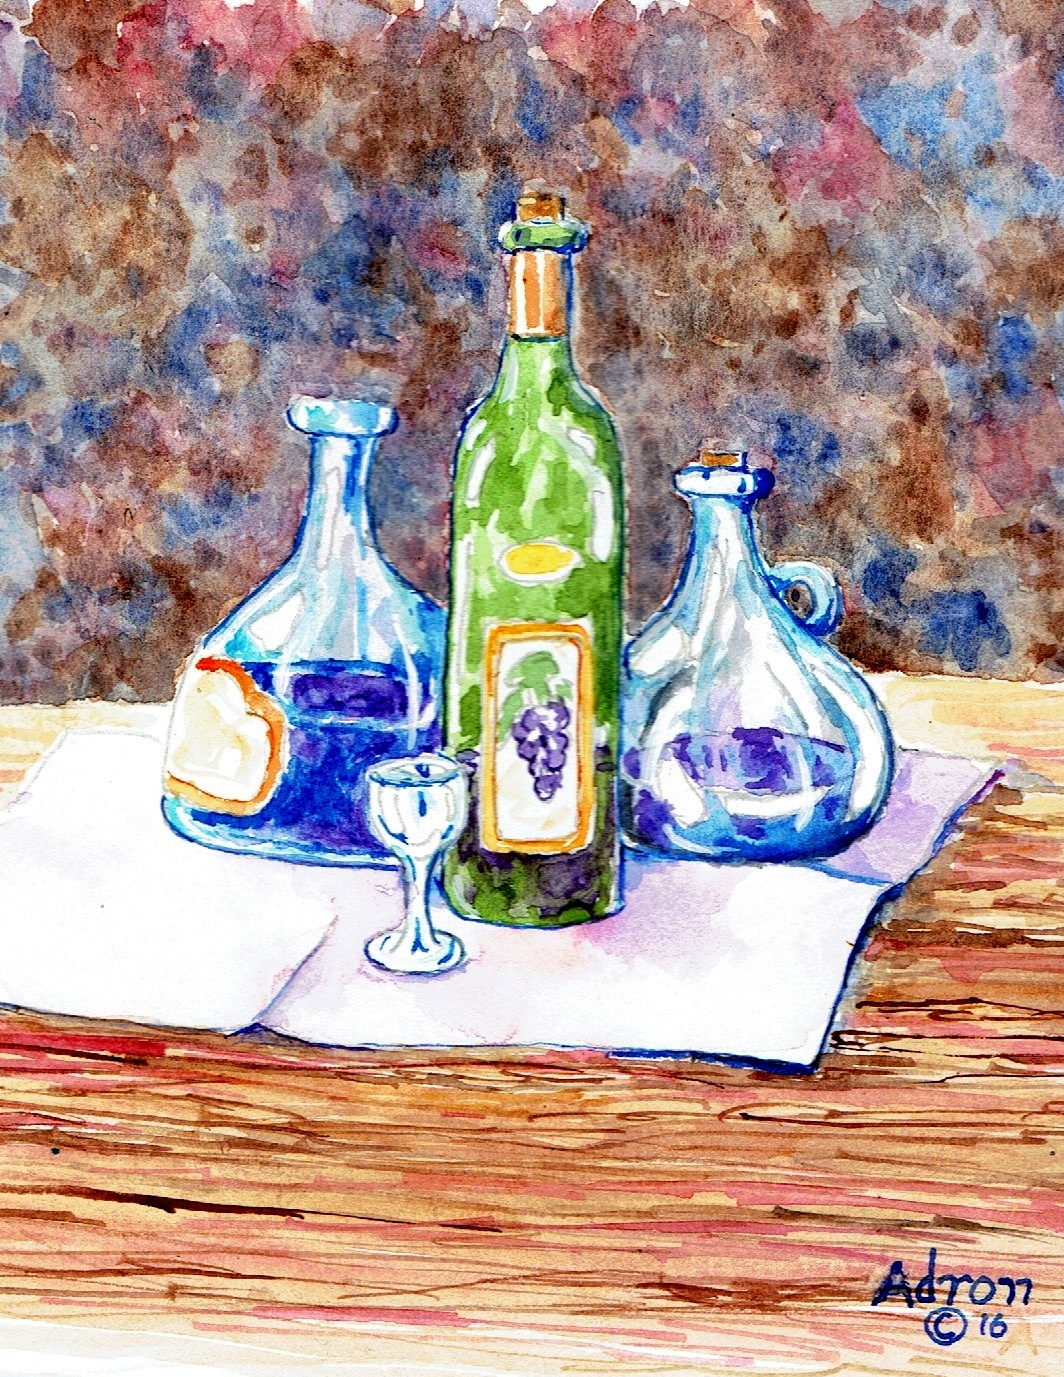 Artist Adron Watercolor Of A Still Life With Three Wine